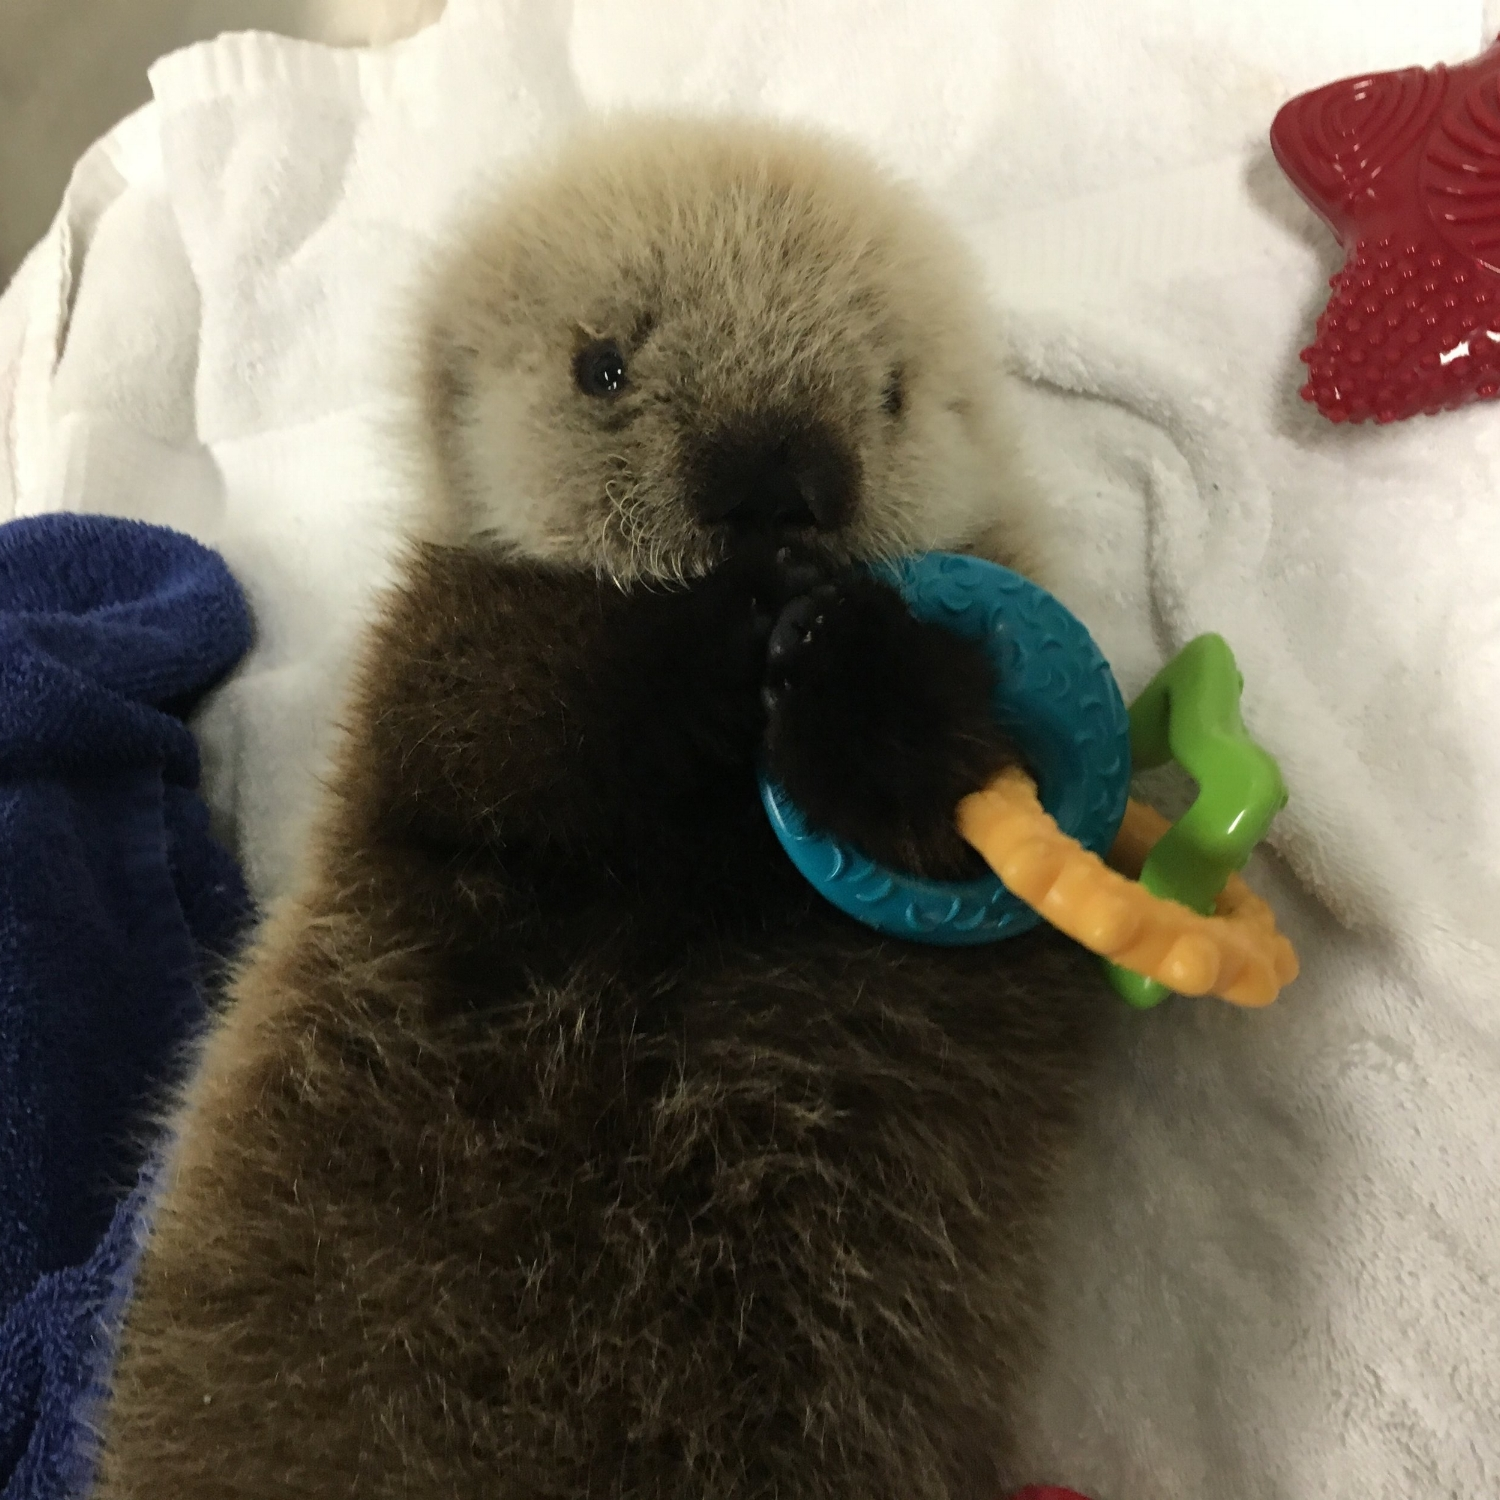 Currently in Washington State there are no facilities designed or permitted to care for endangered marine mammals like this threatened Northern sea otter pup.